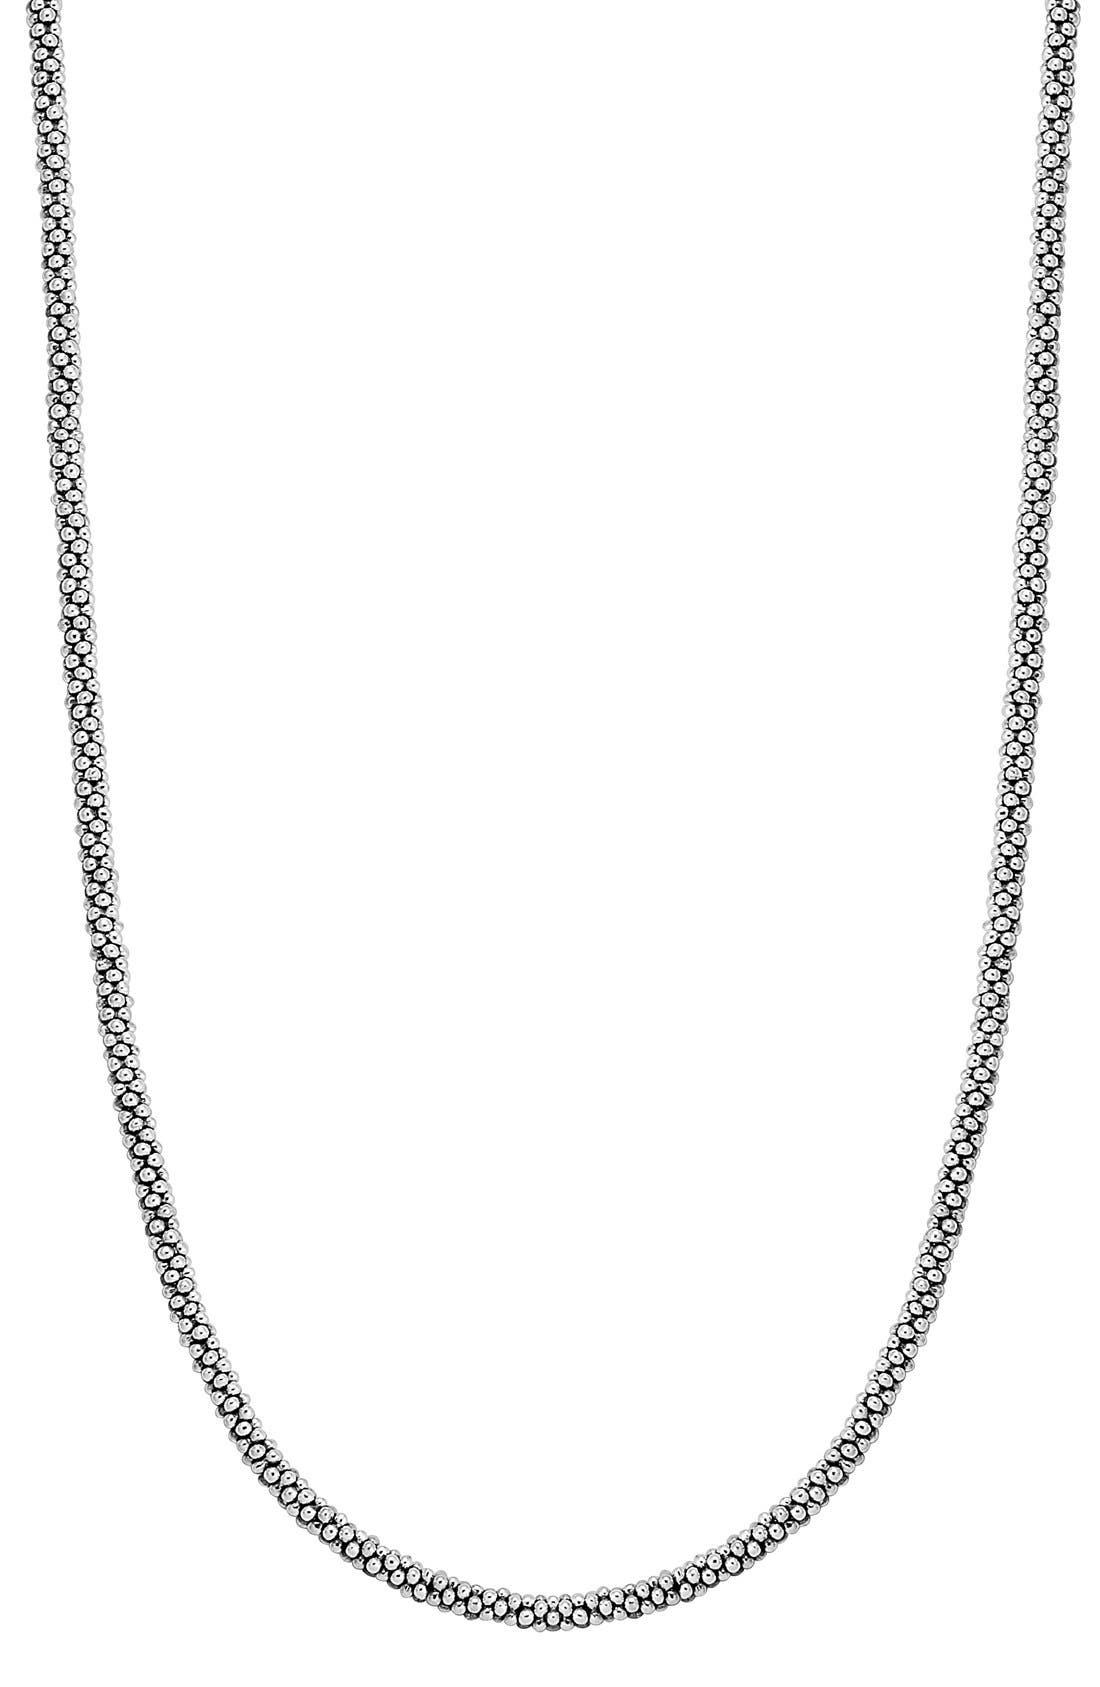 Alternate Image 1 Selected - LAGOS Sterling Silver Caviar 3mm Rope Necklace